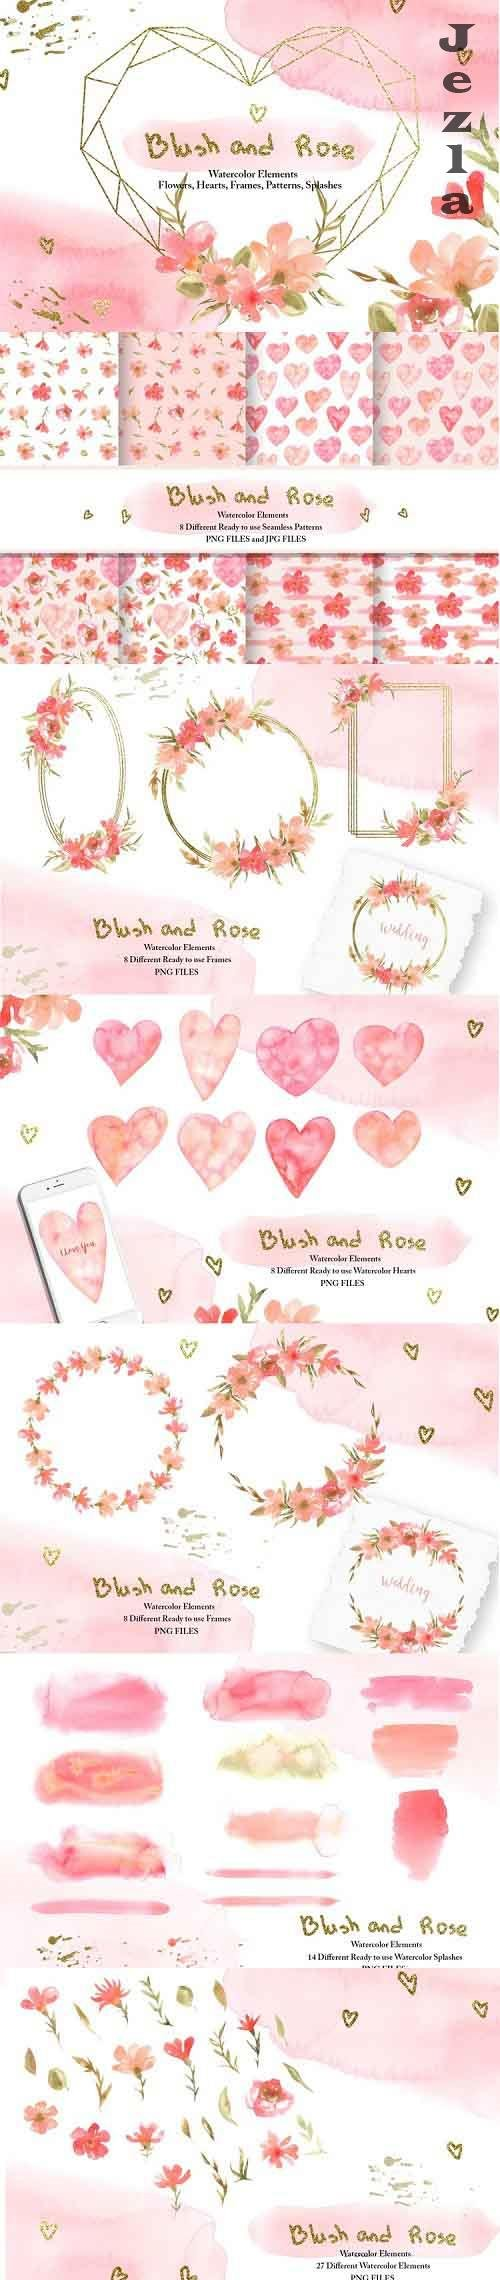 Watercolor Blush and Rose Collection - 1110740